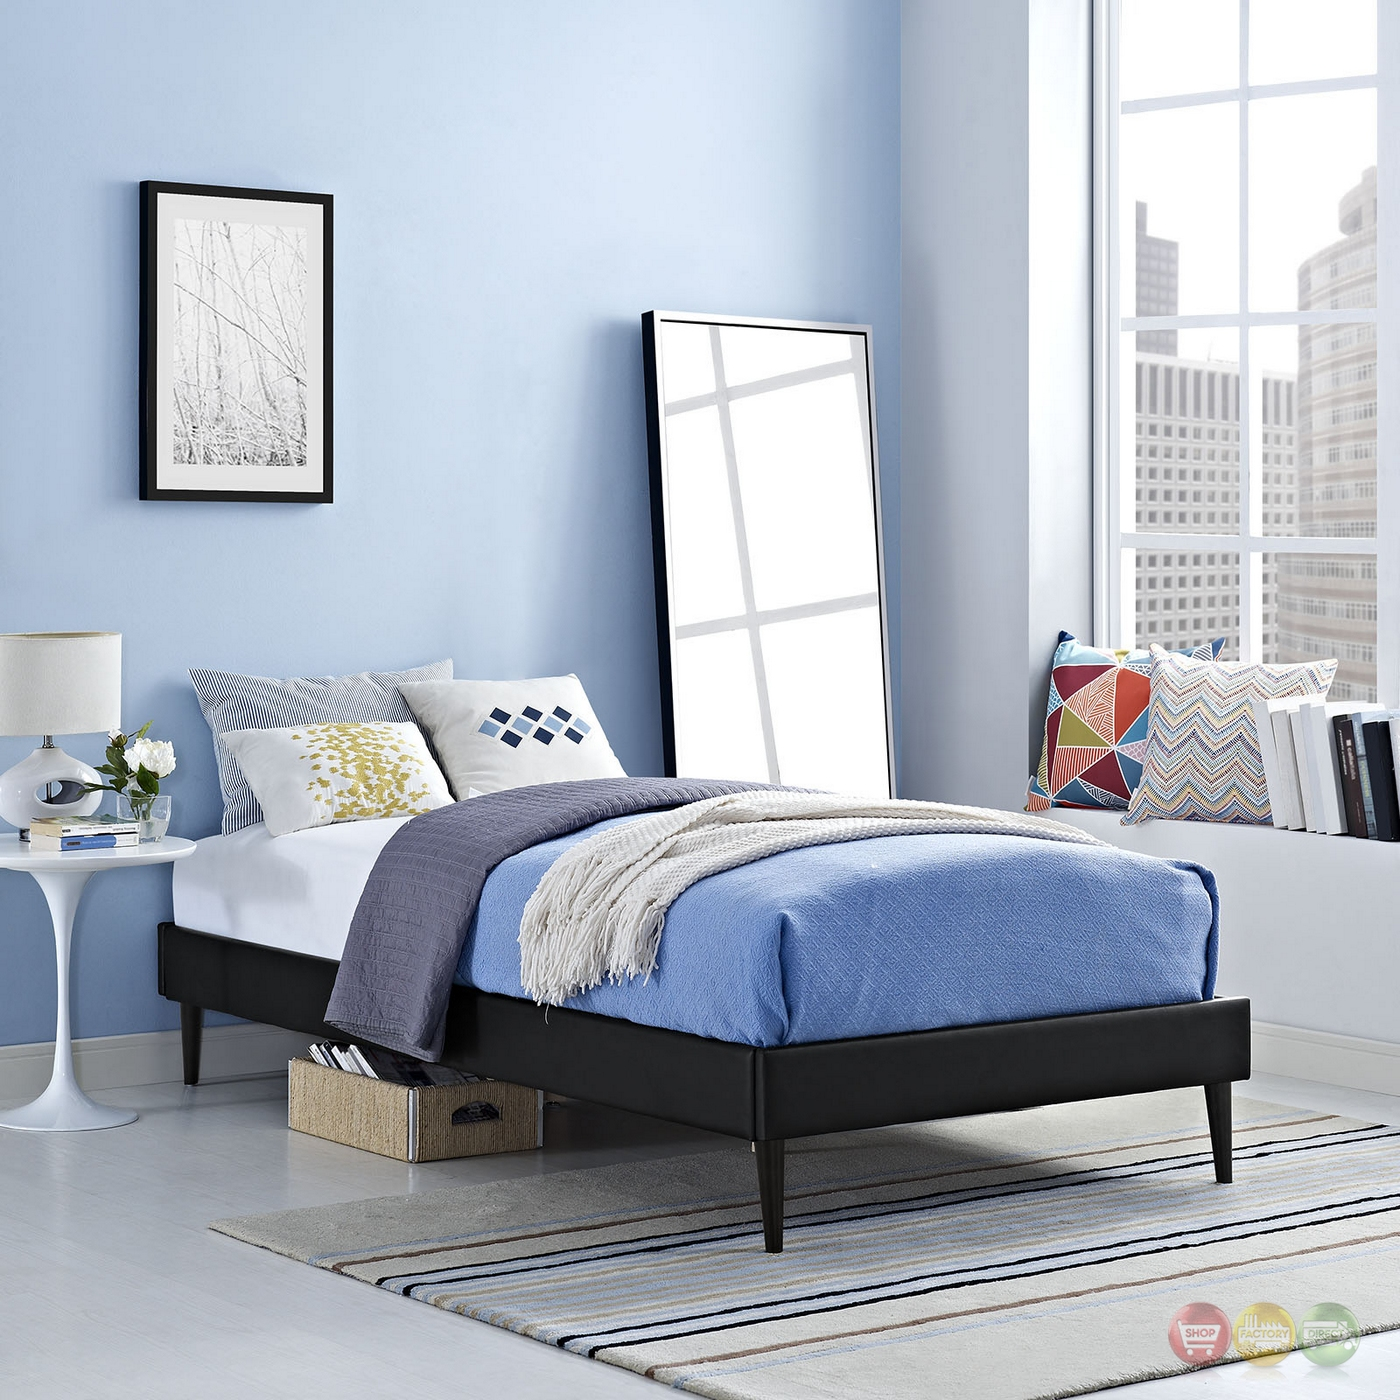 Sherry upholstered vinyl leather twin platform bed frame Black twin bed